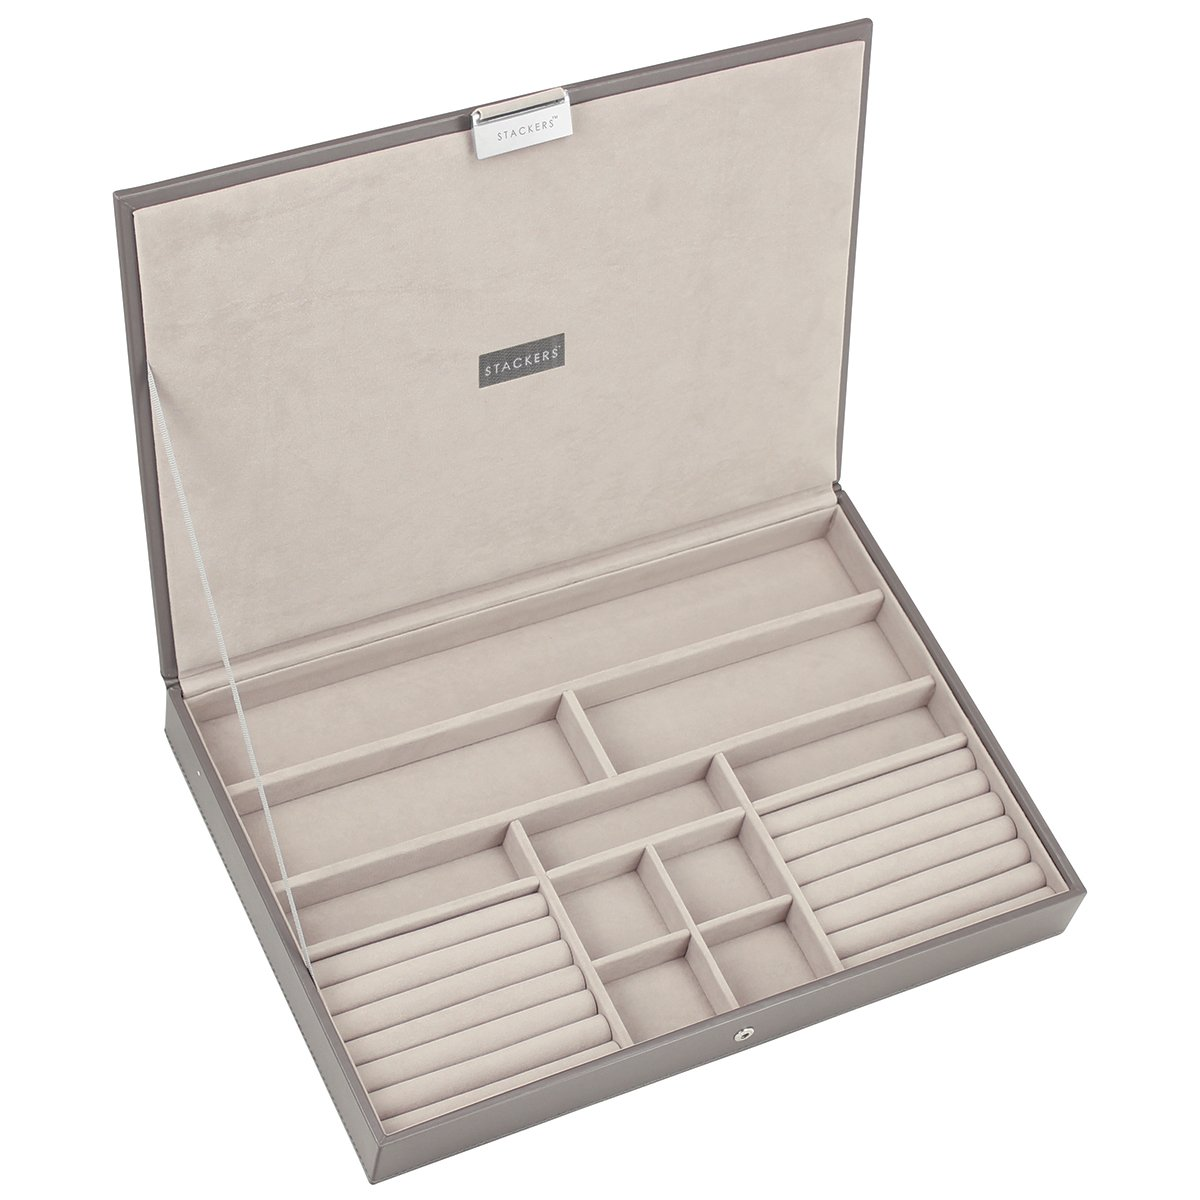 STACKERS /'SUPER SIZE/' Dove Grey Cross Hatch Large Lidded STACKER Jewellery Box with Mint Green Lining.